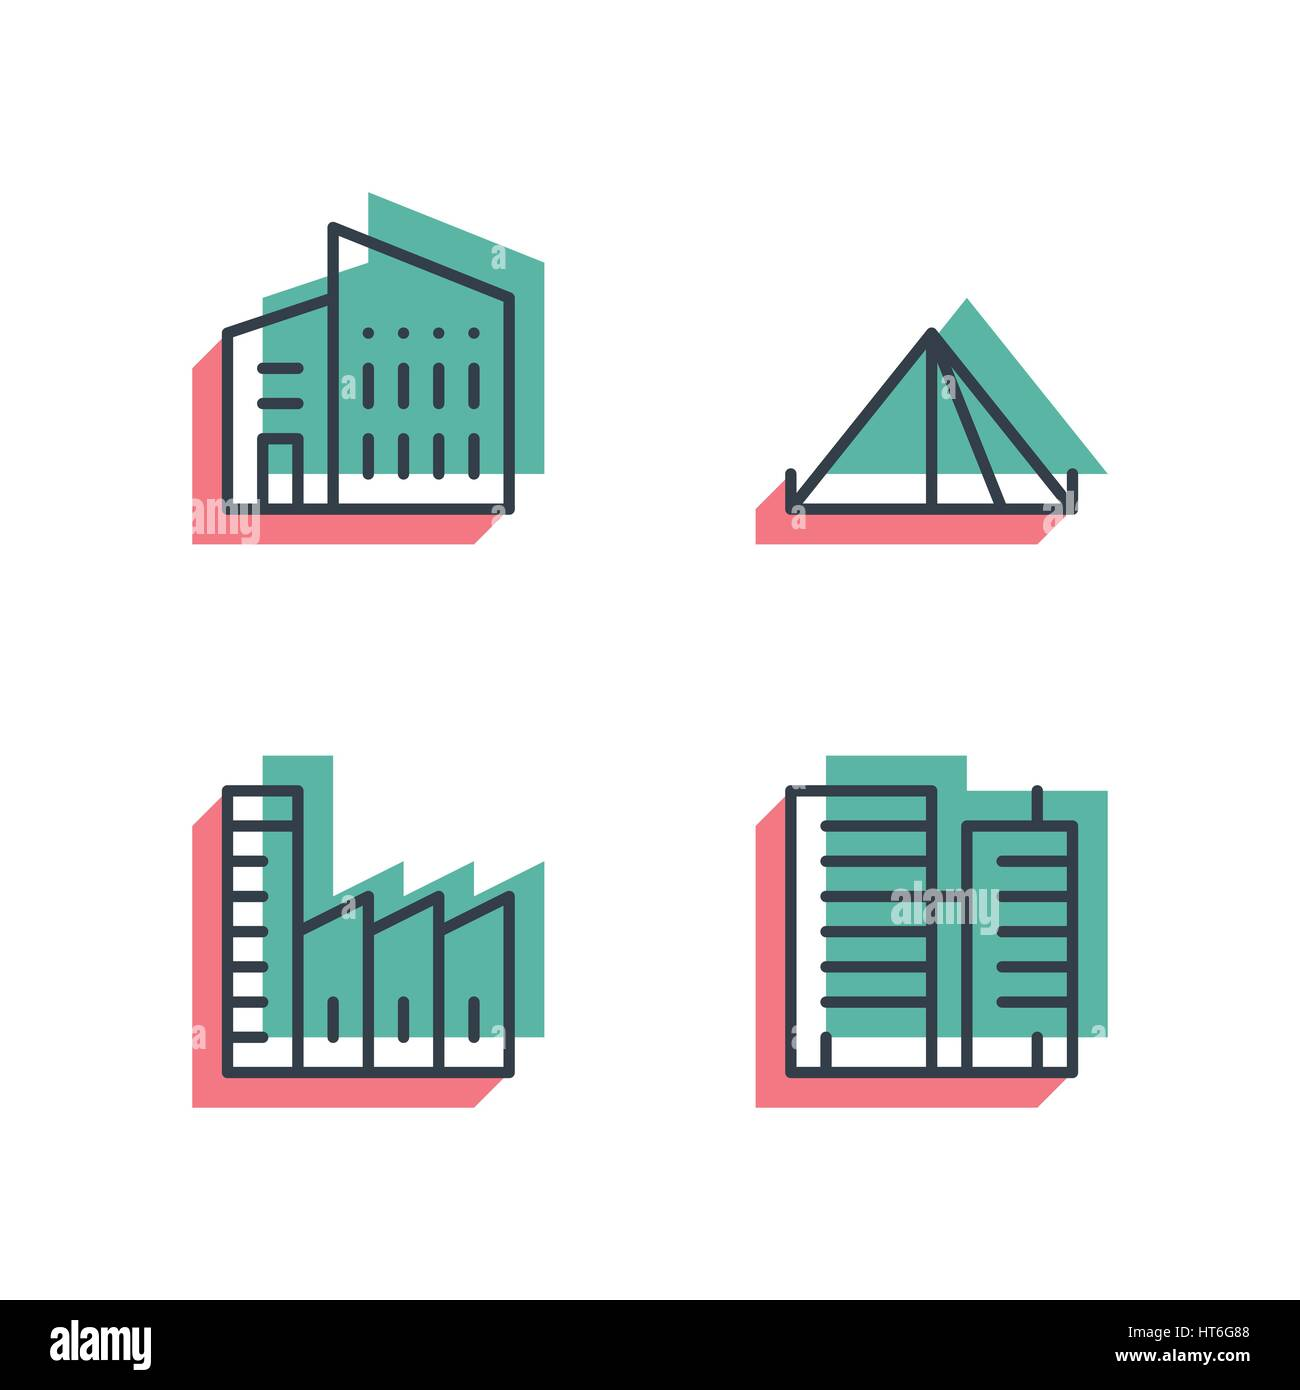 Different house, buildings icon set. Anaglyph 3d. - Stock Image